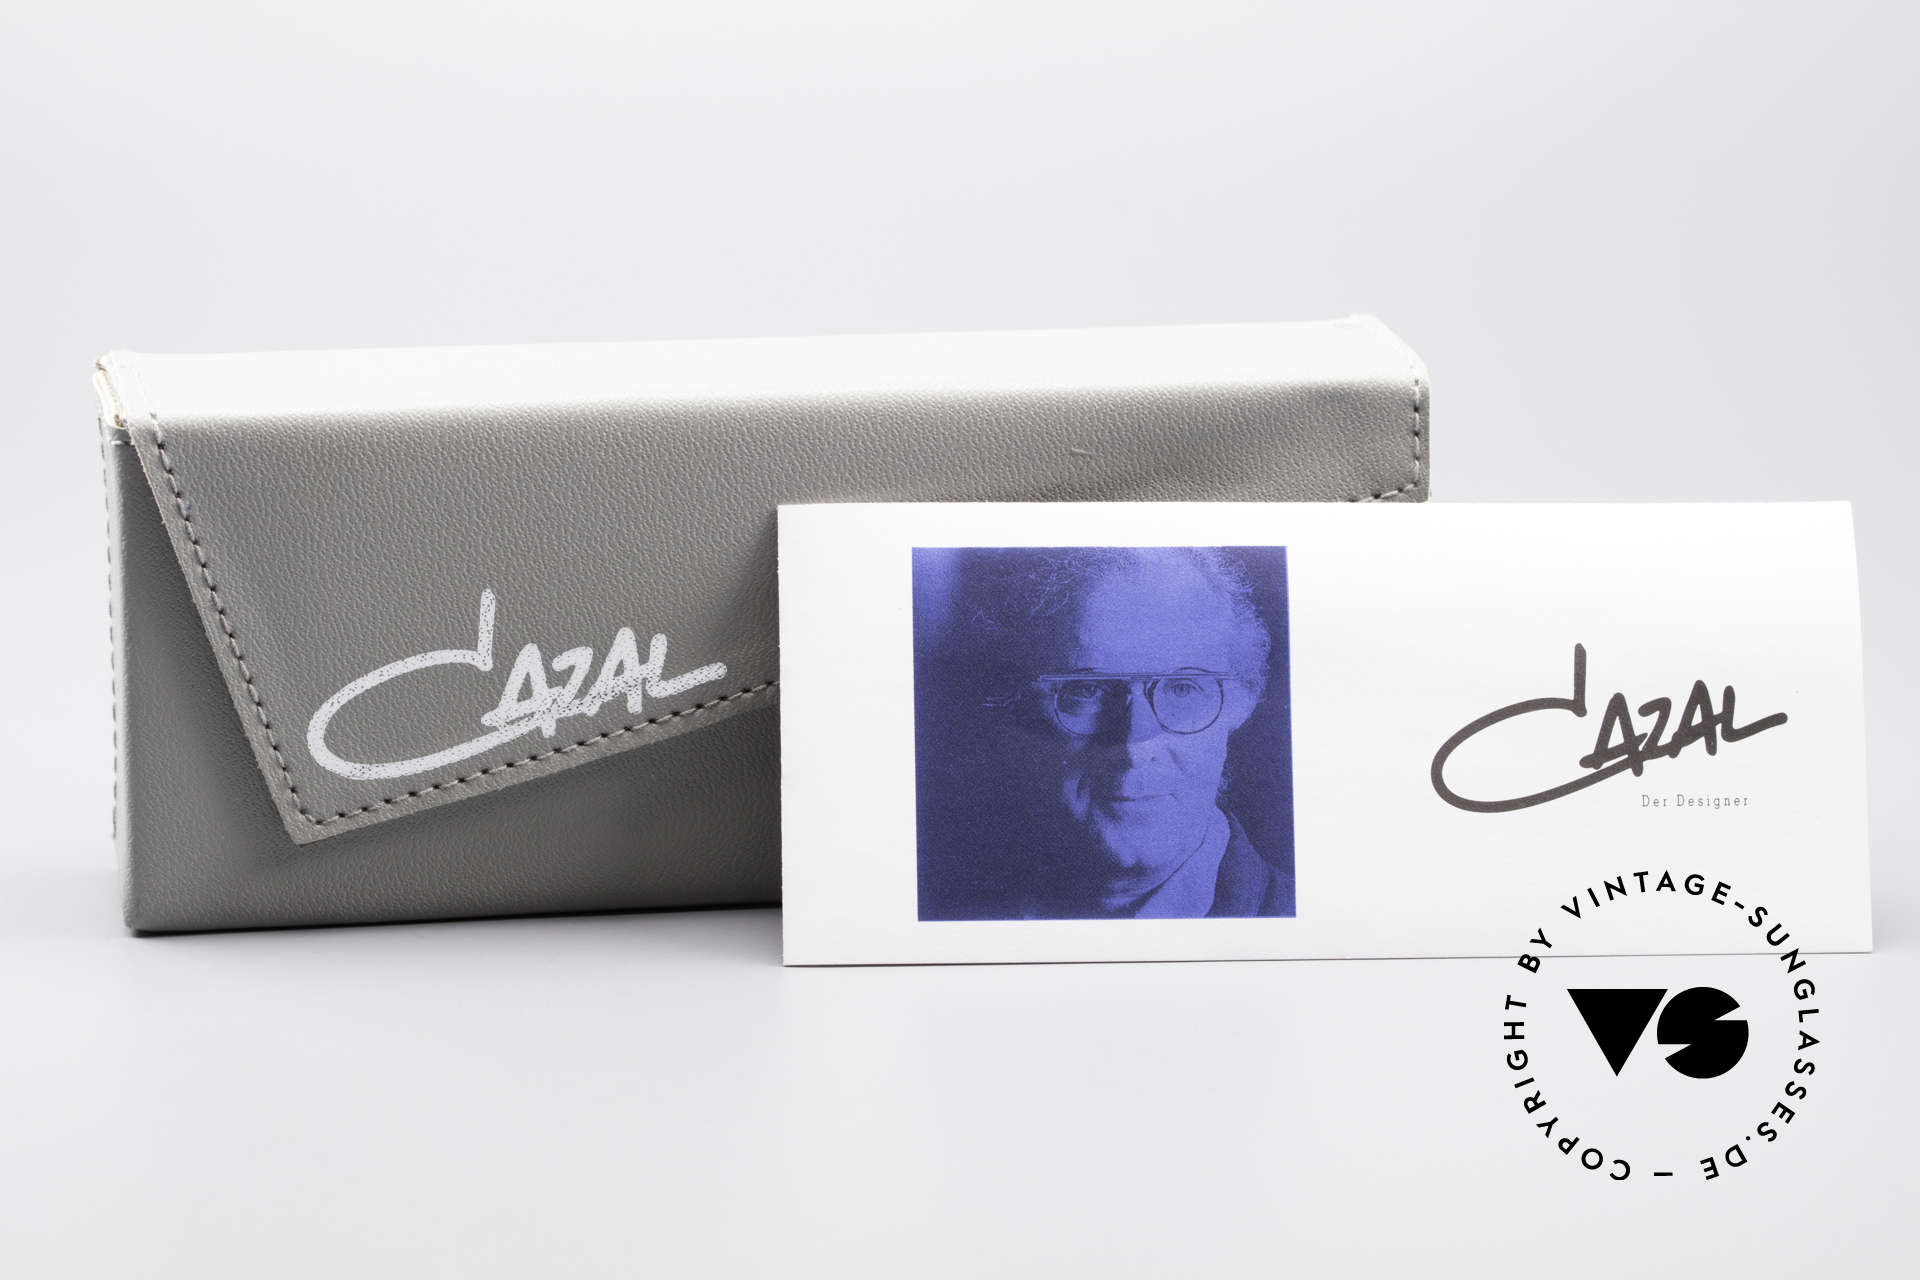 Cazal 648 90's Cari Zalloni Sunglasses, medium size 48-19 (suitable for ladies & gentlemen), Made for Men and Women